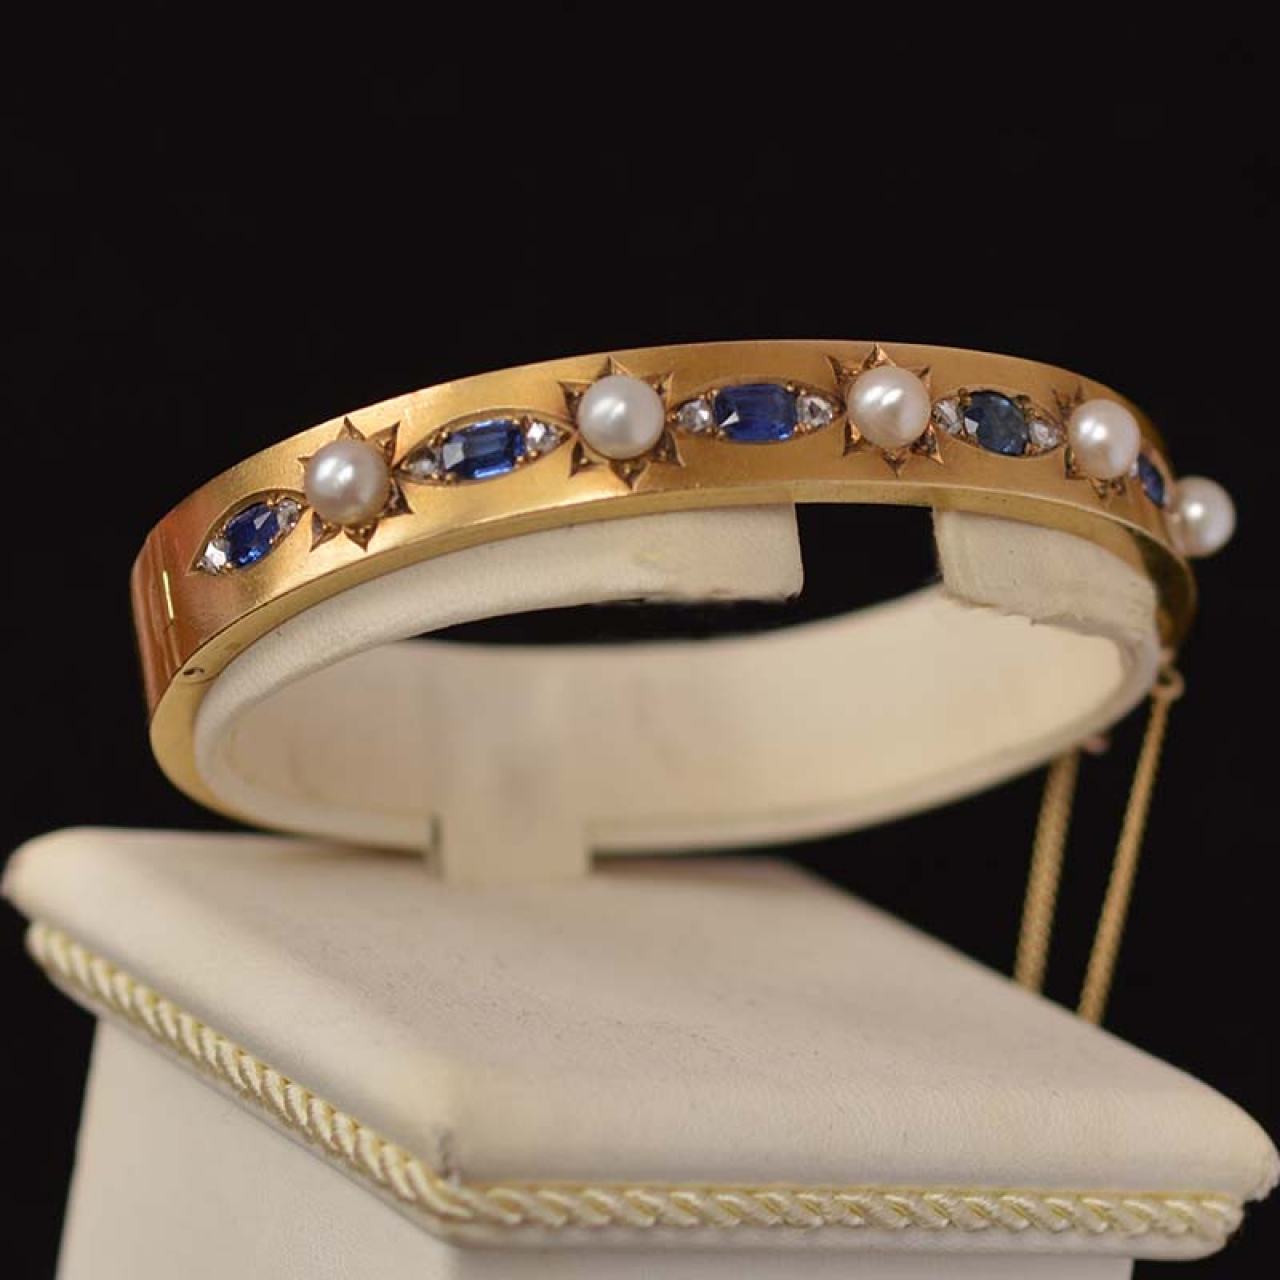 diamond sapphire products in techline bangle bangles once diamonds a upon bracelet with kisses